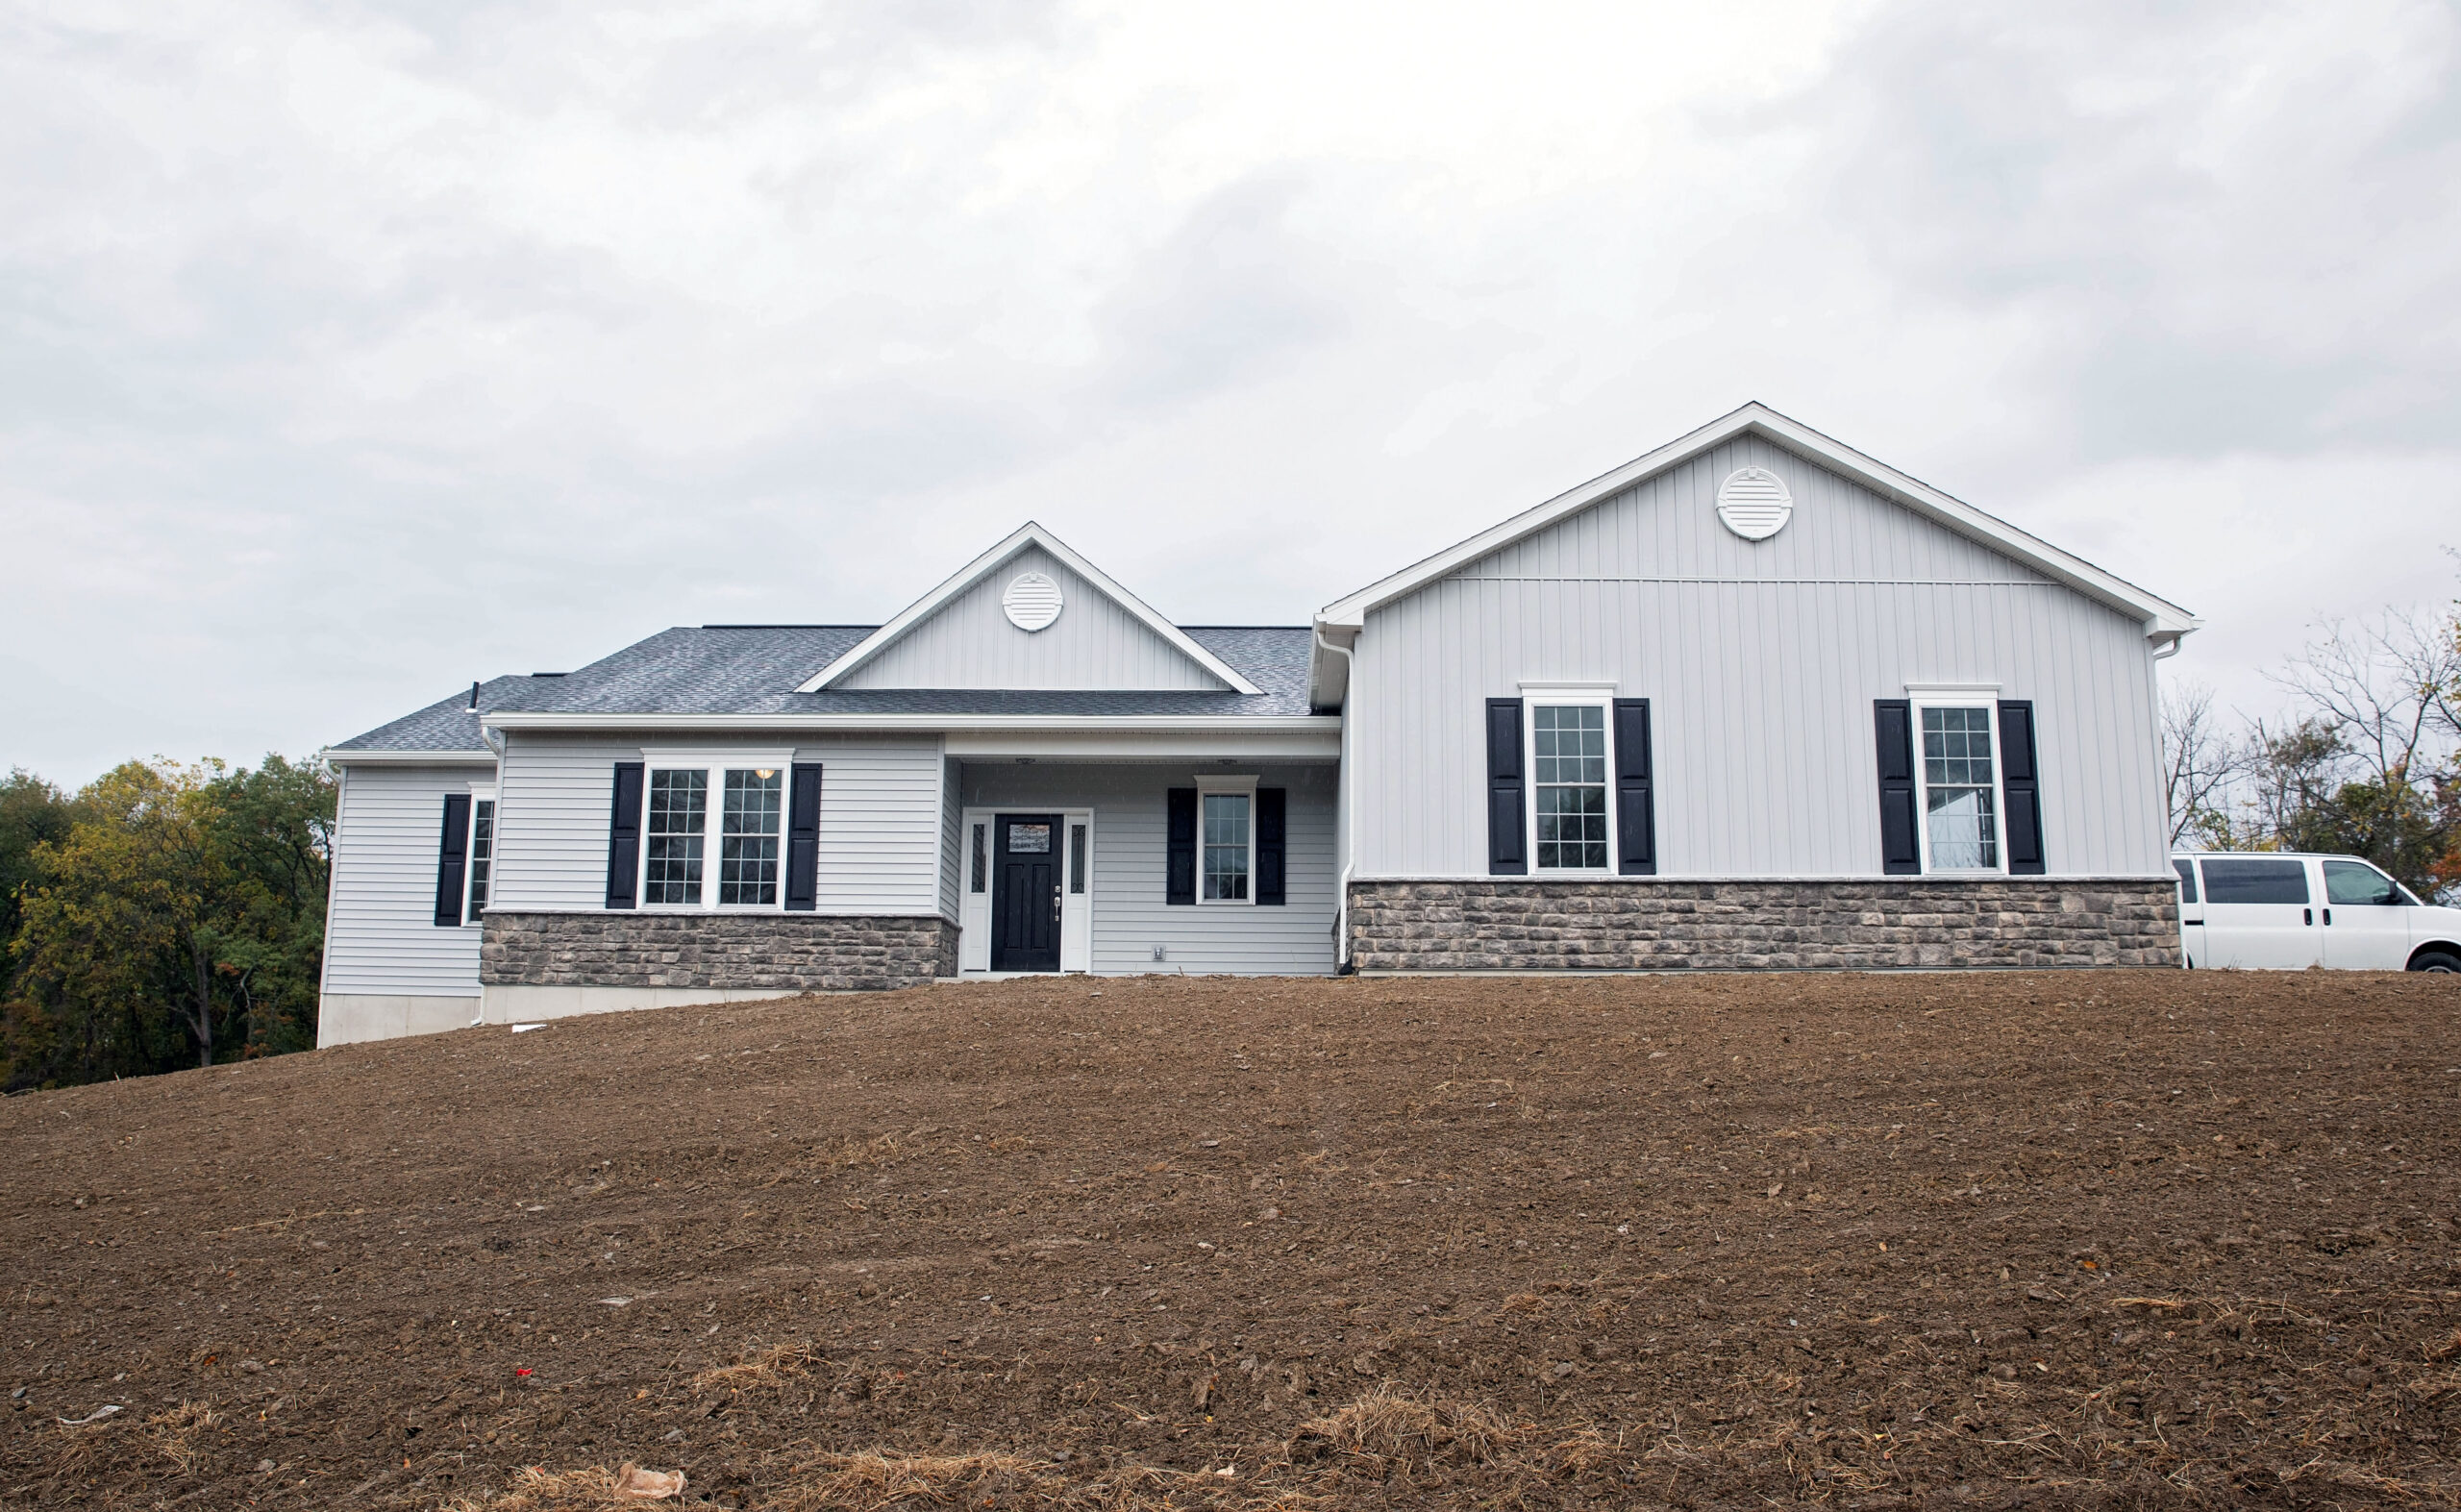 The front of a custom-built Lehigh Valley home with Board & Batten and clapboard vinyl siding and knee wall height stone.